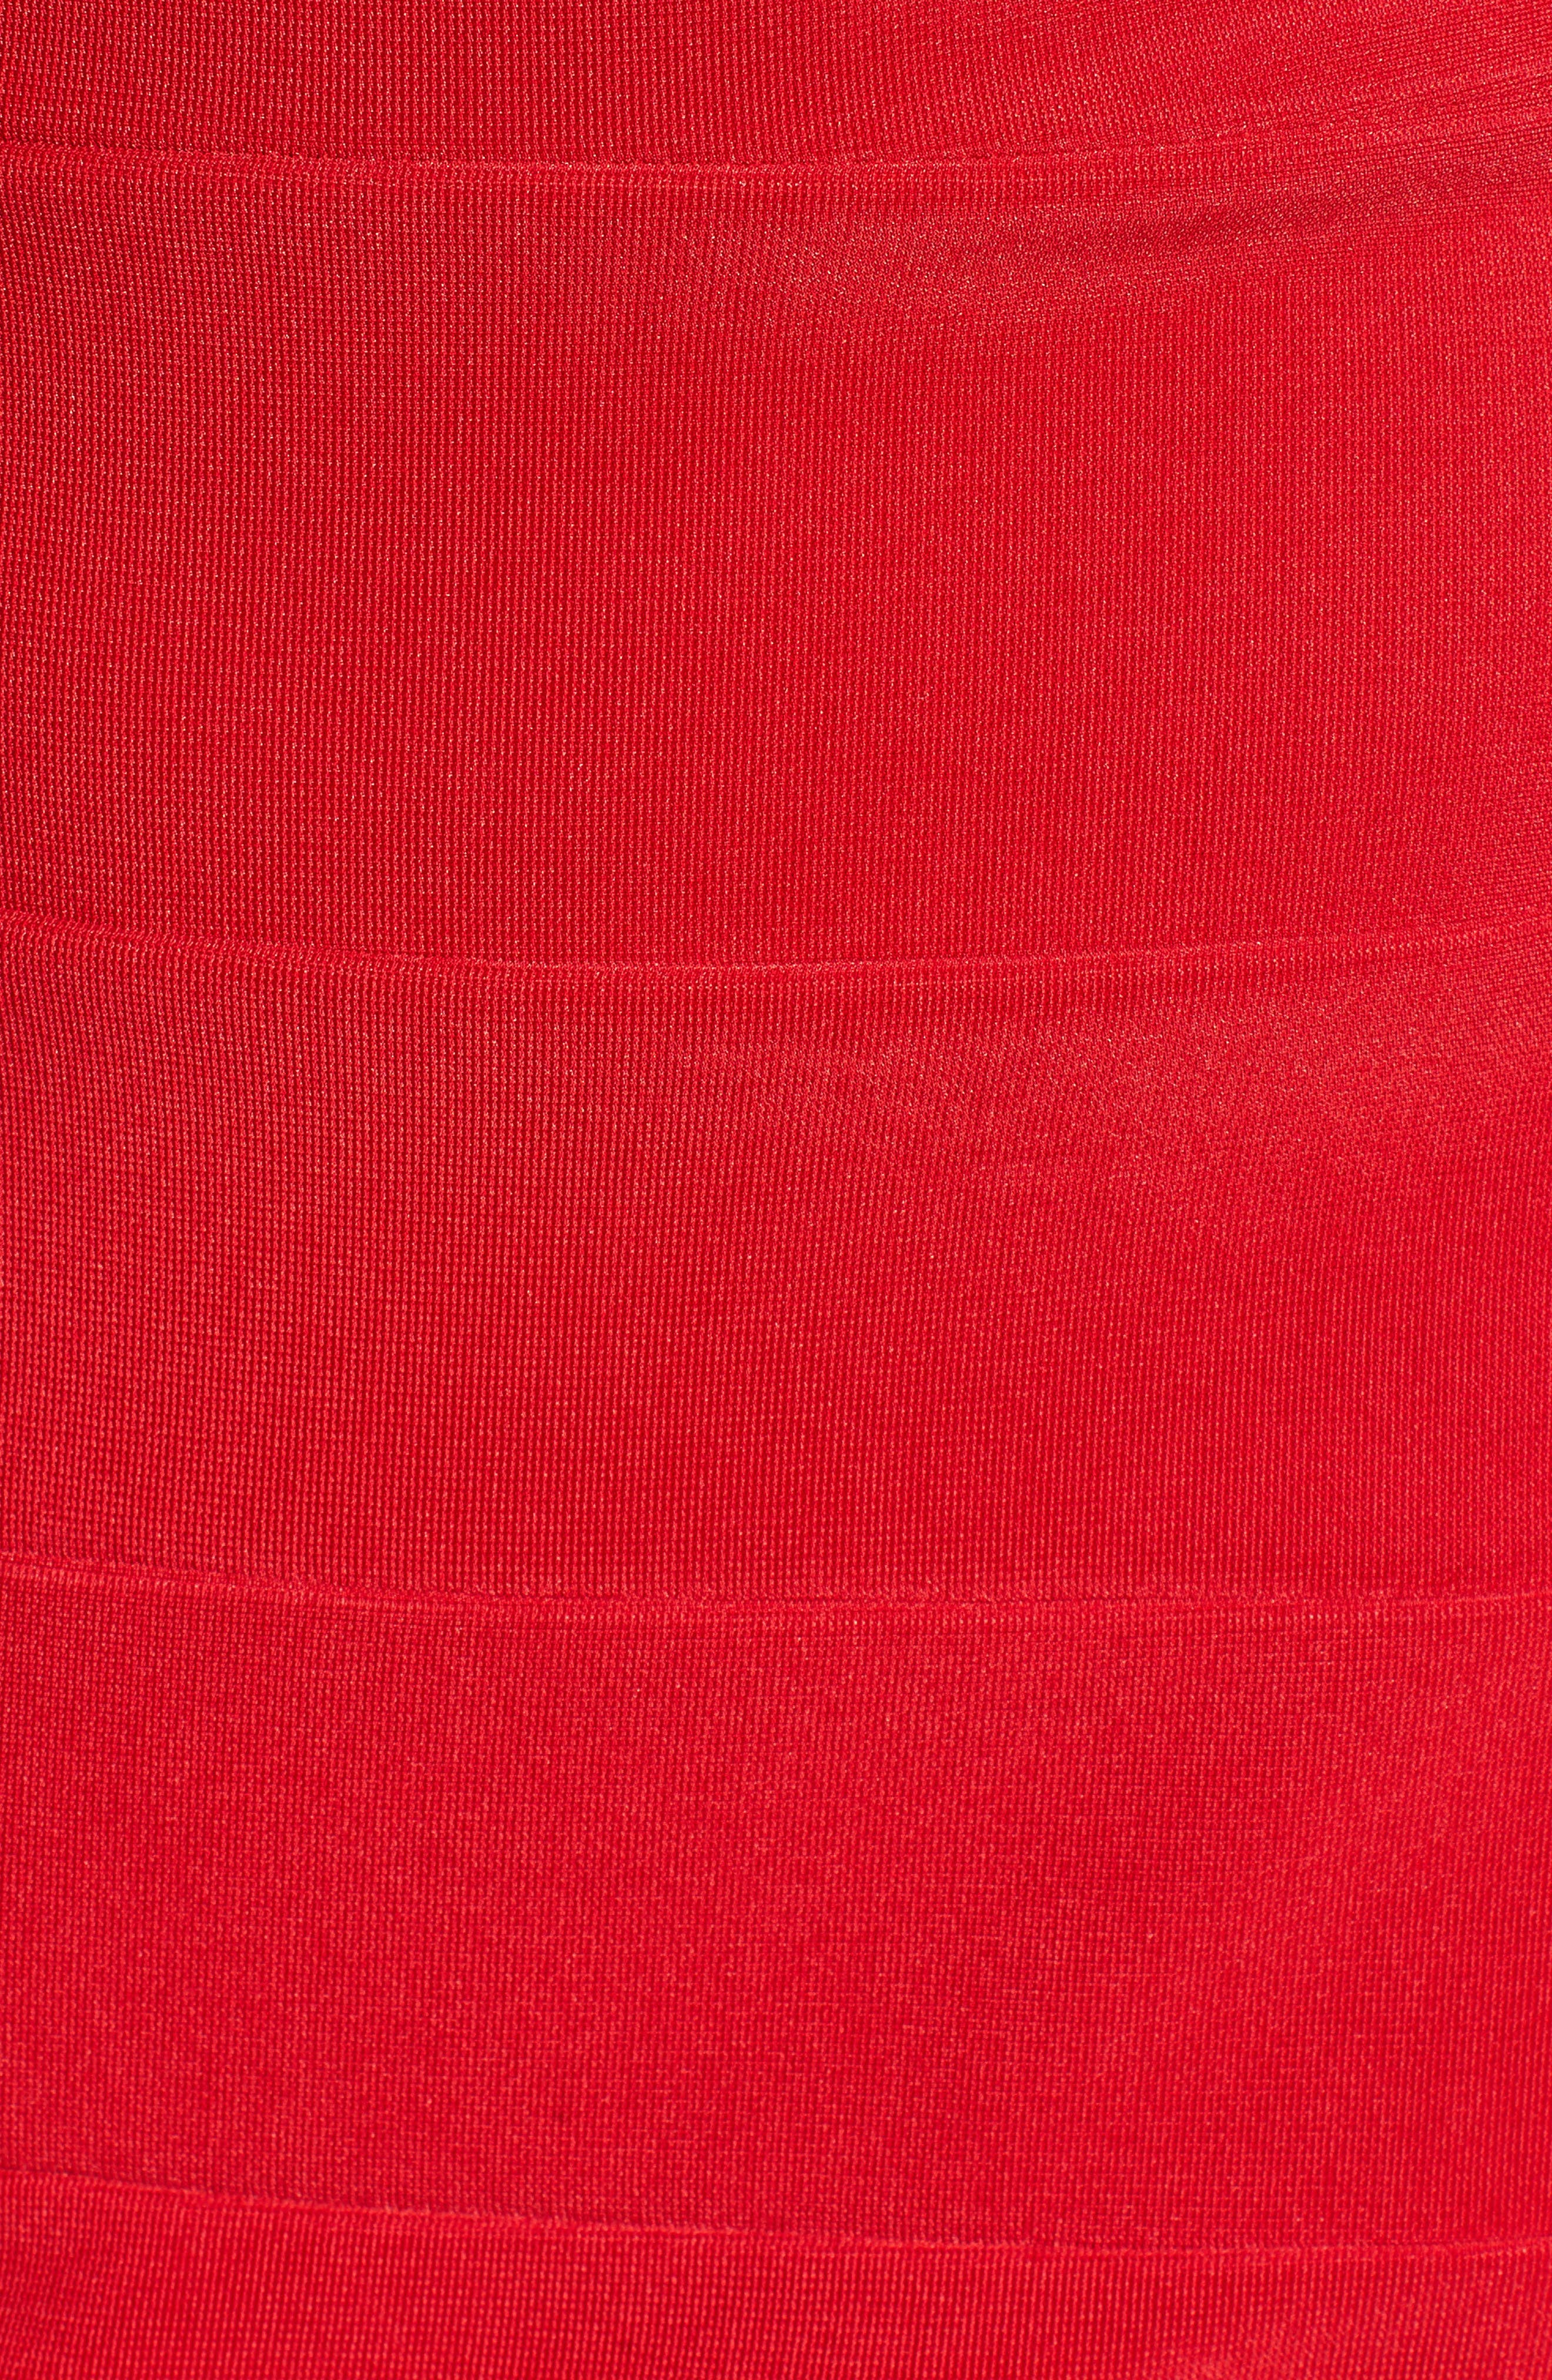 Illusion Body-Con Dress,                             Alternate thumbnail 5, color,                             Red